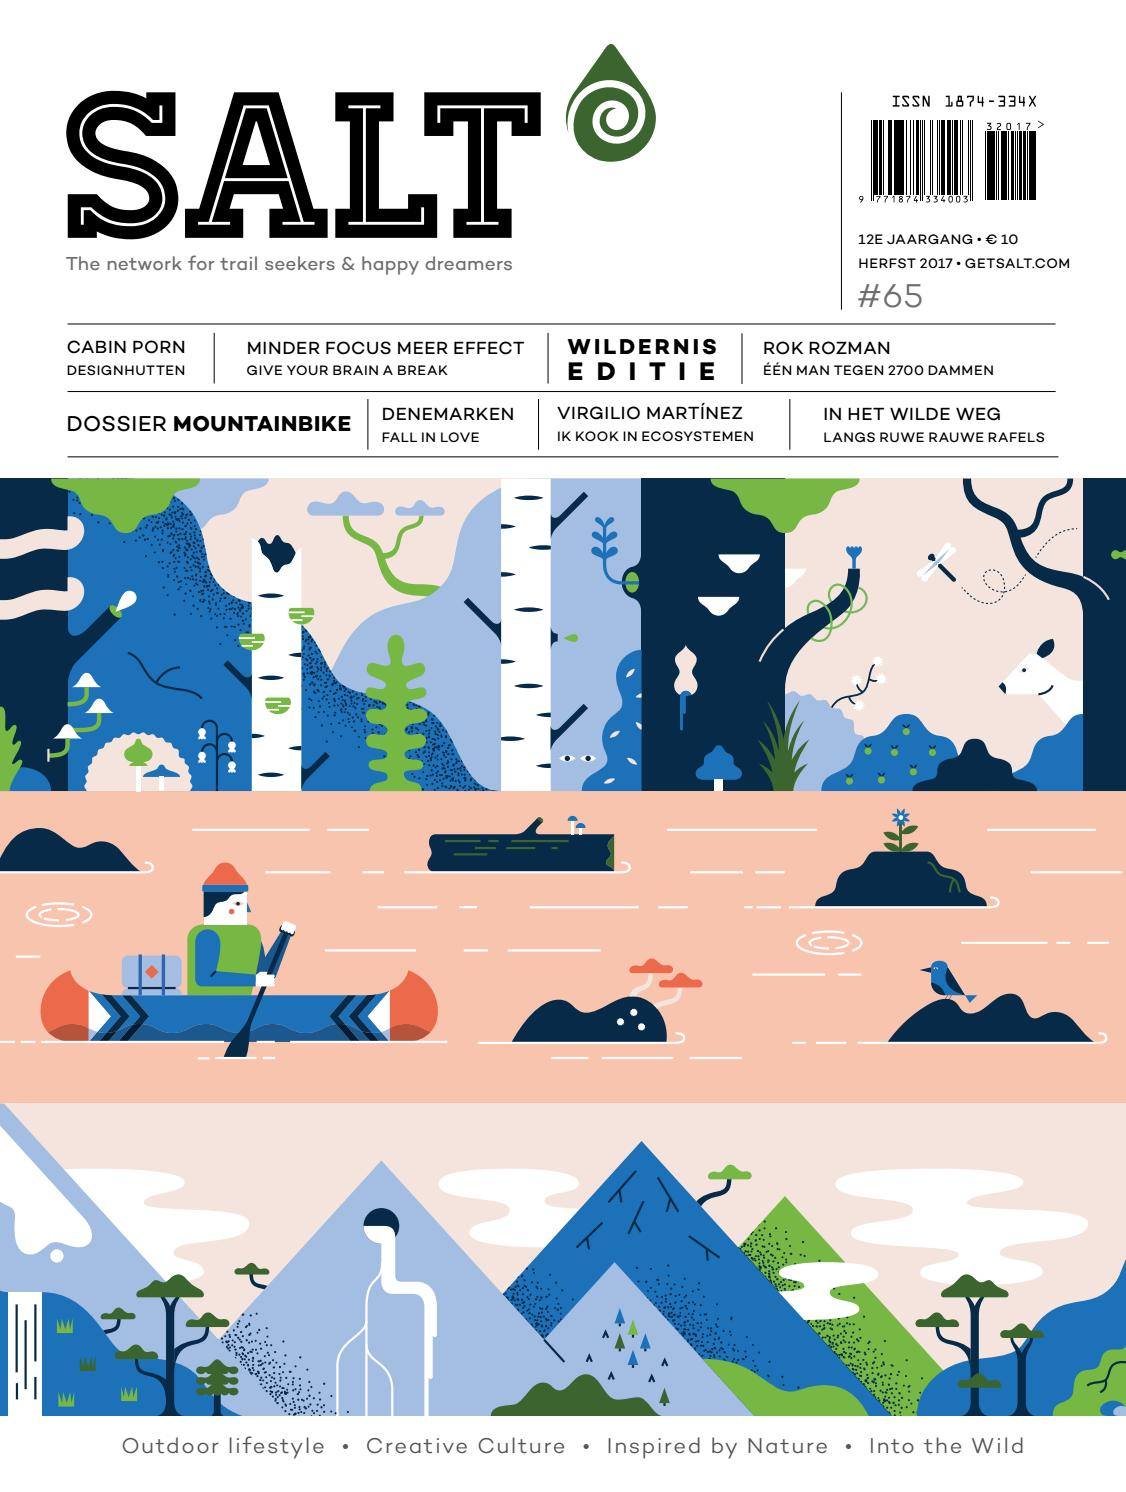 3 4 Duim Is Hoeveel Mm Salt Magazine Herfst 2017